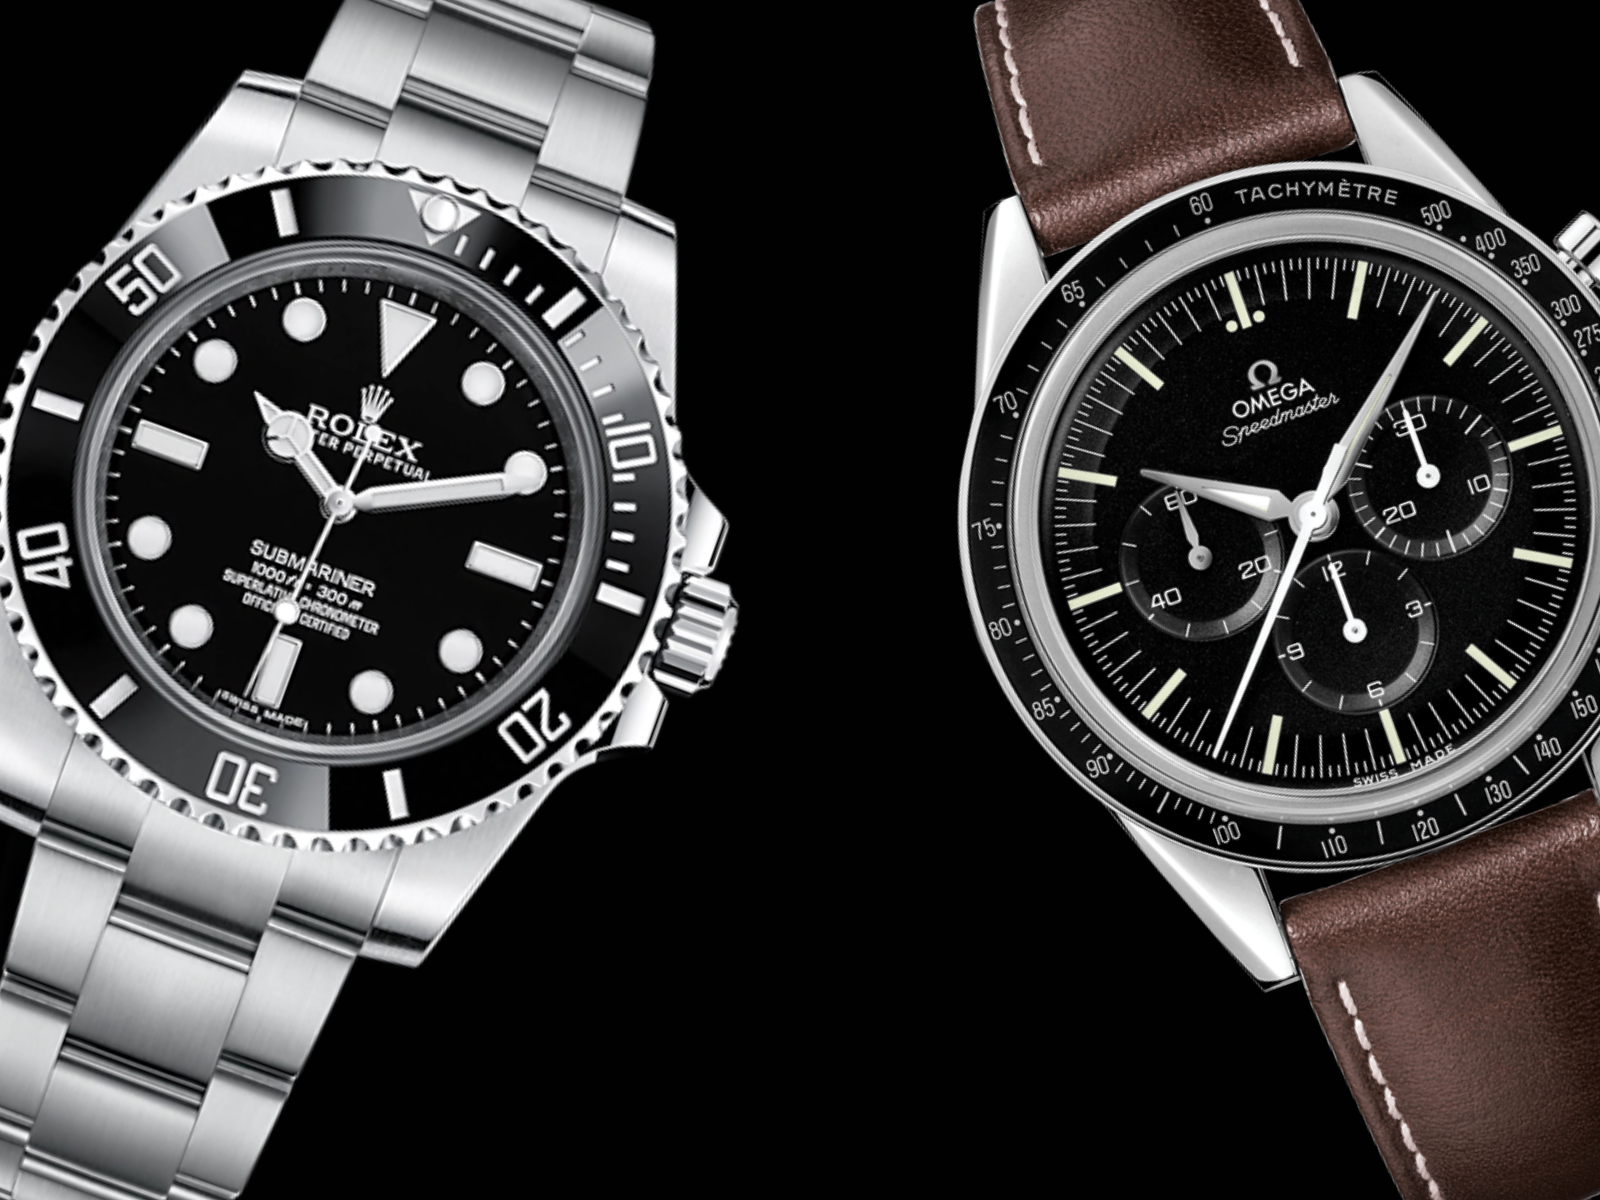 2010 2019: A Decade in Watches Watch Chronicler